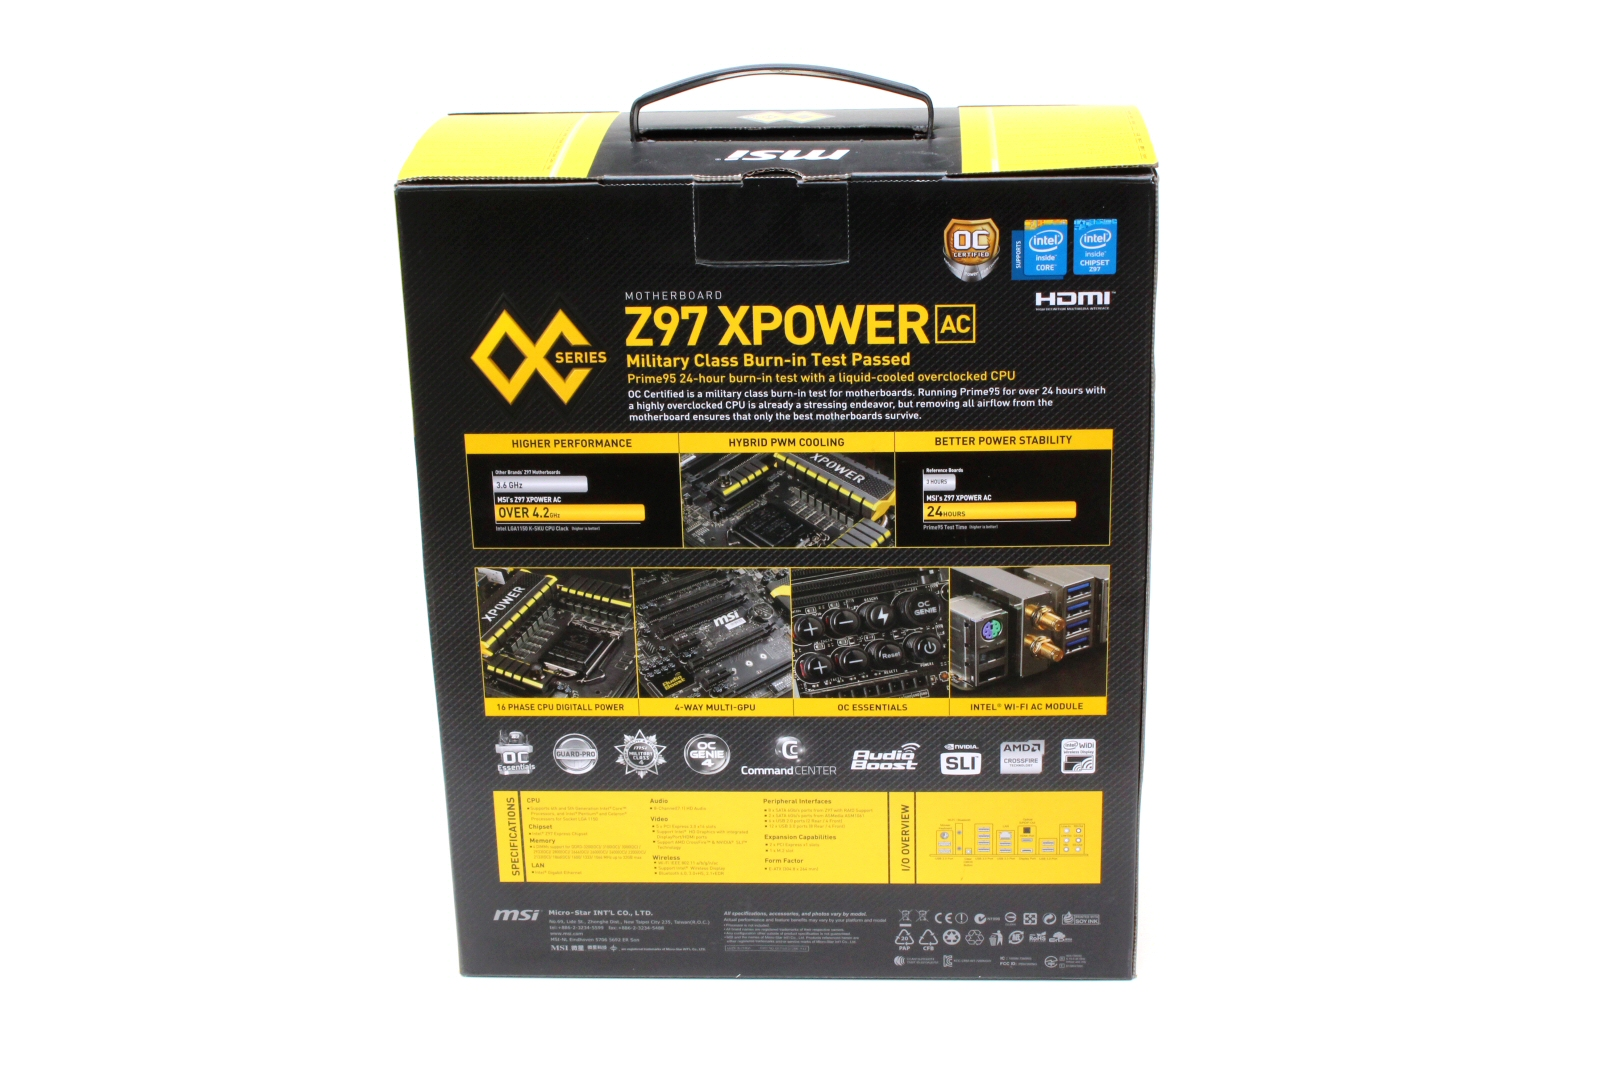 [Review] MSI Z97 XPower AC-img_5245.jpg